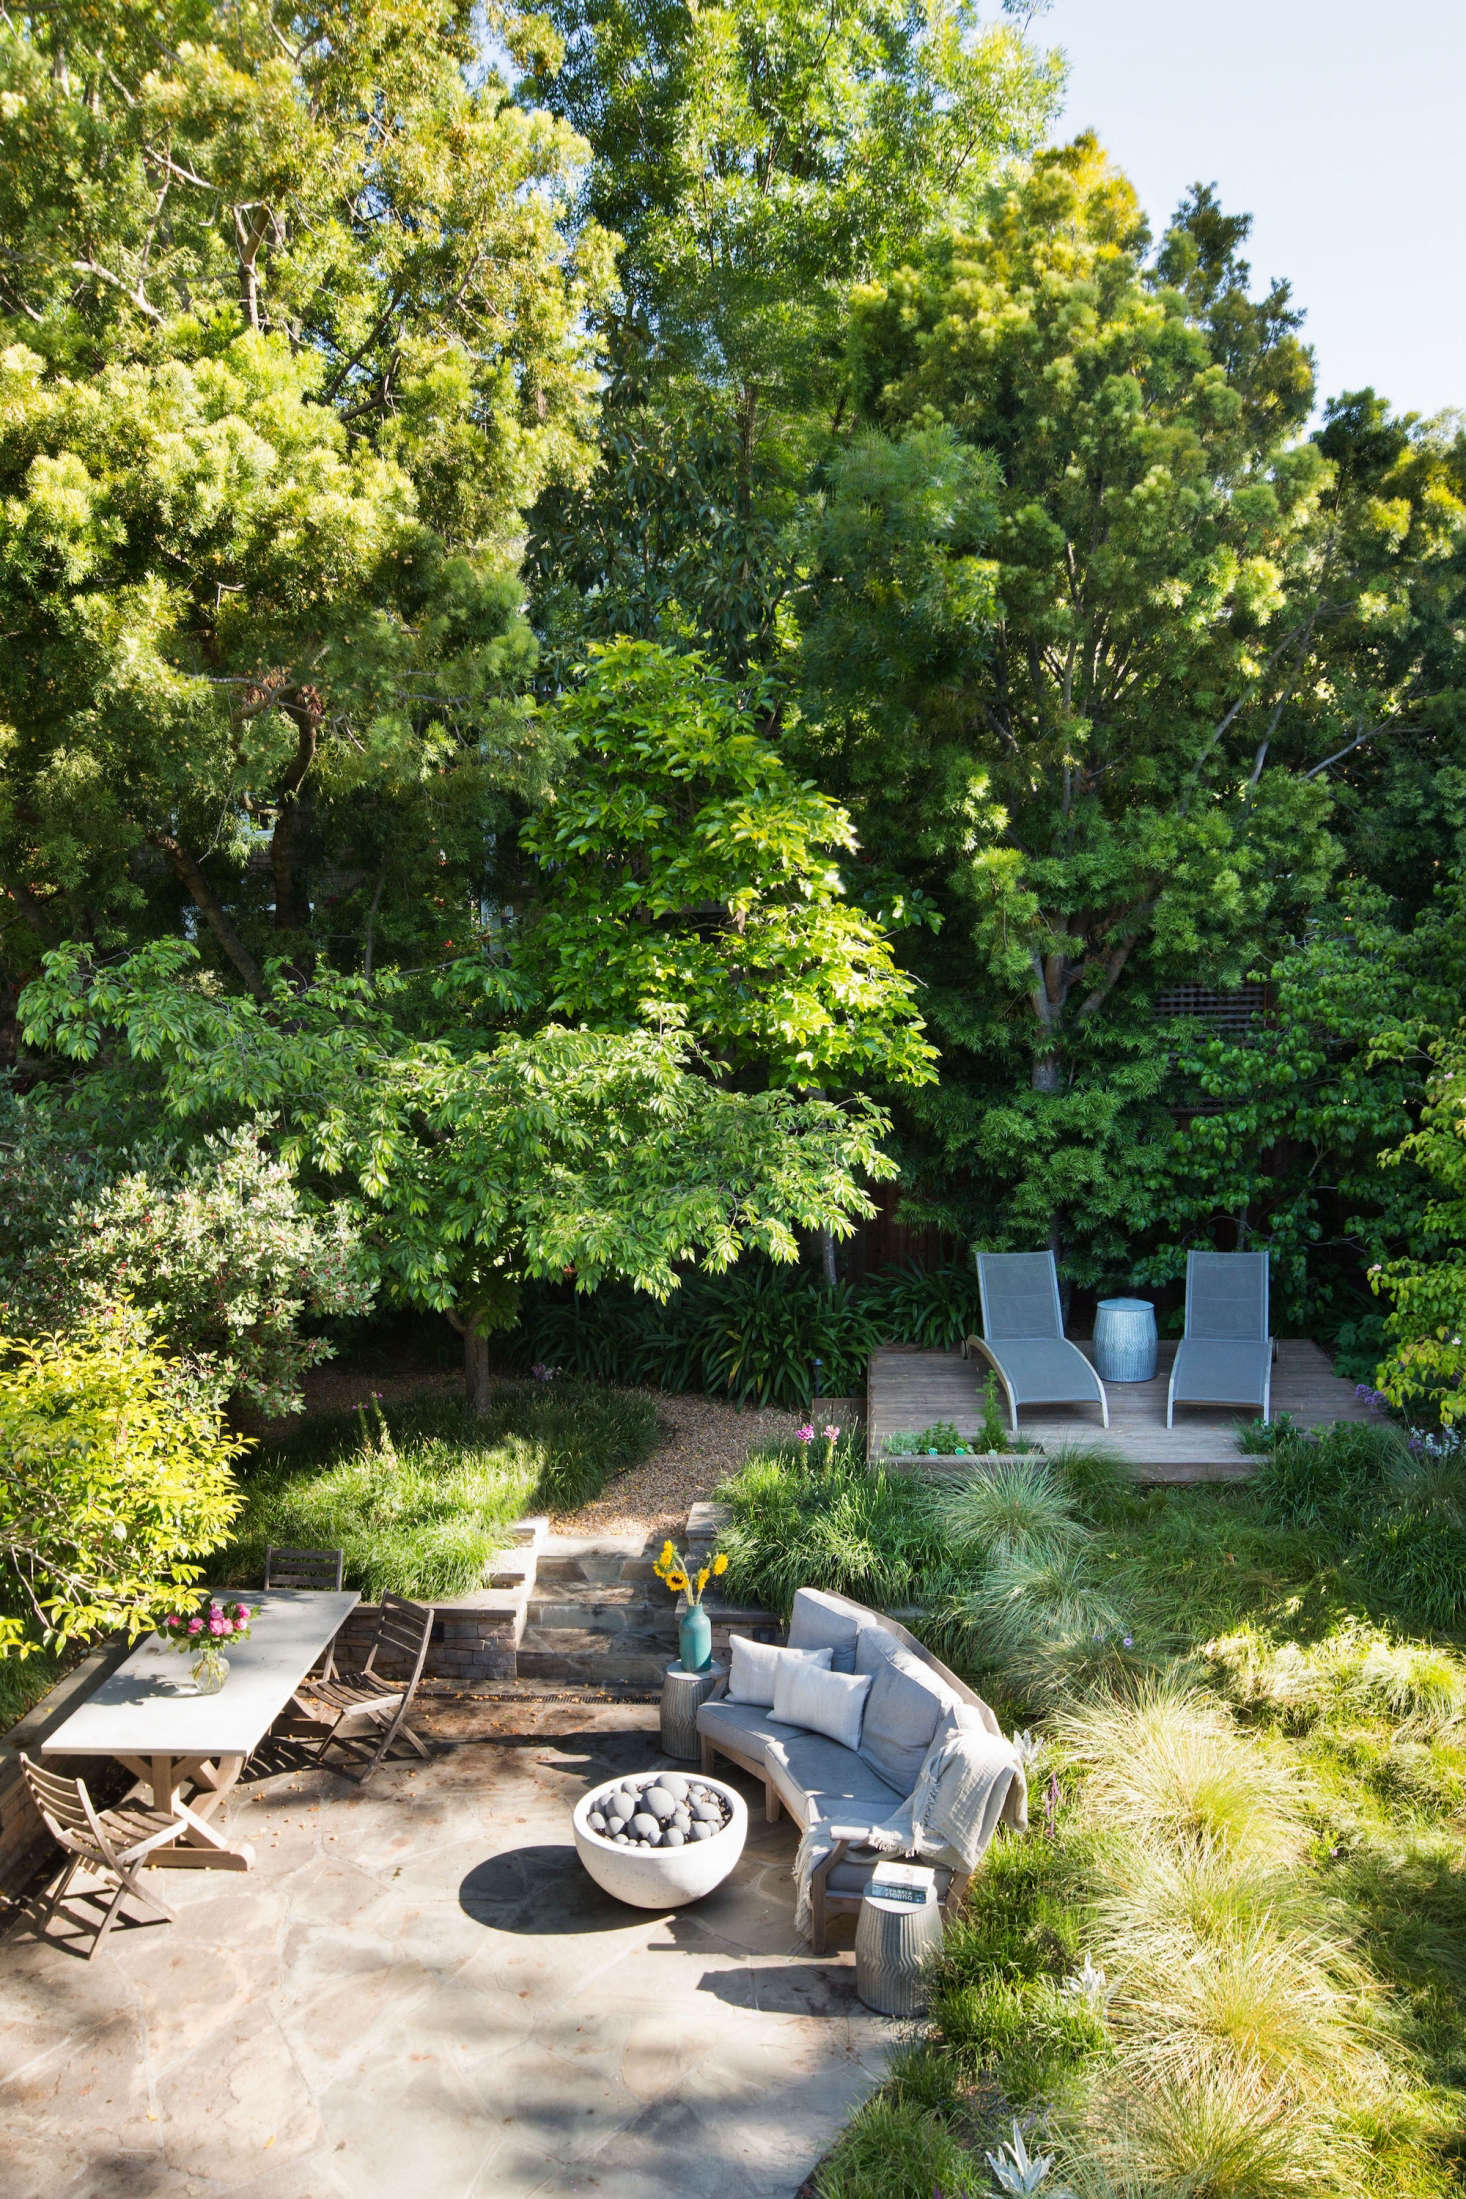 From a bedroom balcony you look down into a backyard meadow full of flowing grasses